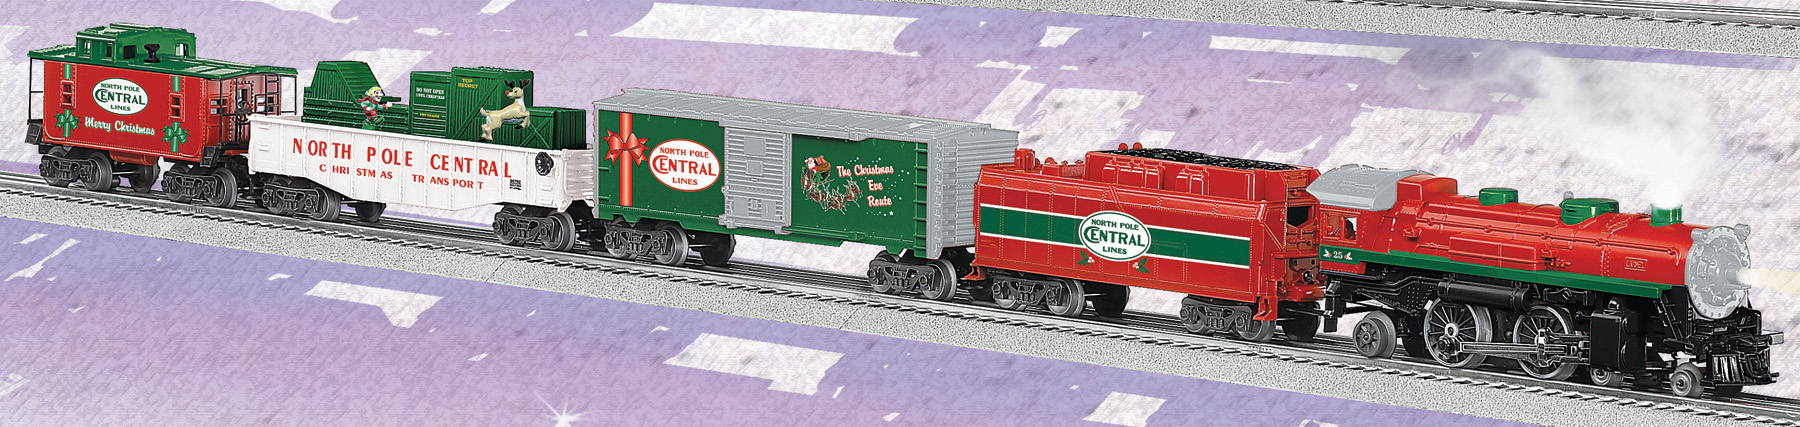 North Pole Central Christmas Train (Conventional 4-4-2 Steam Loco ...